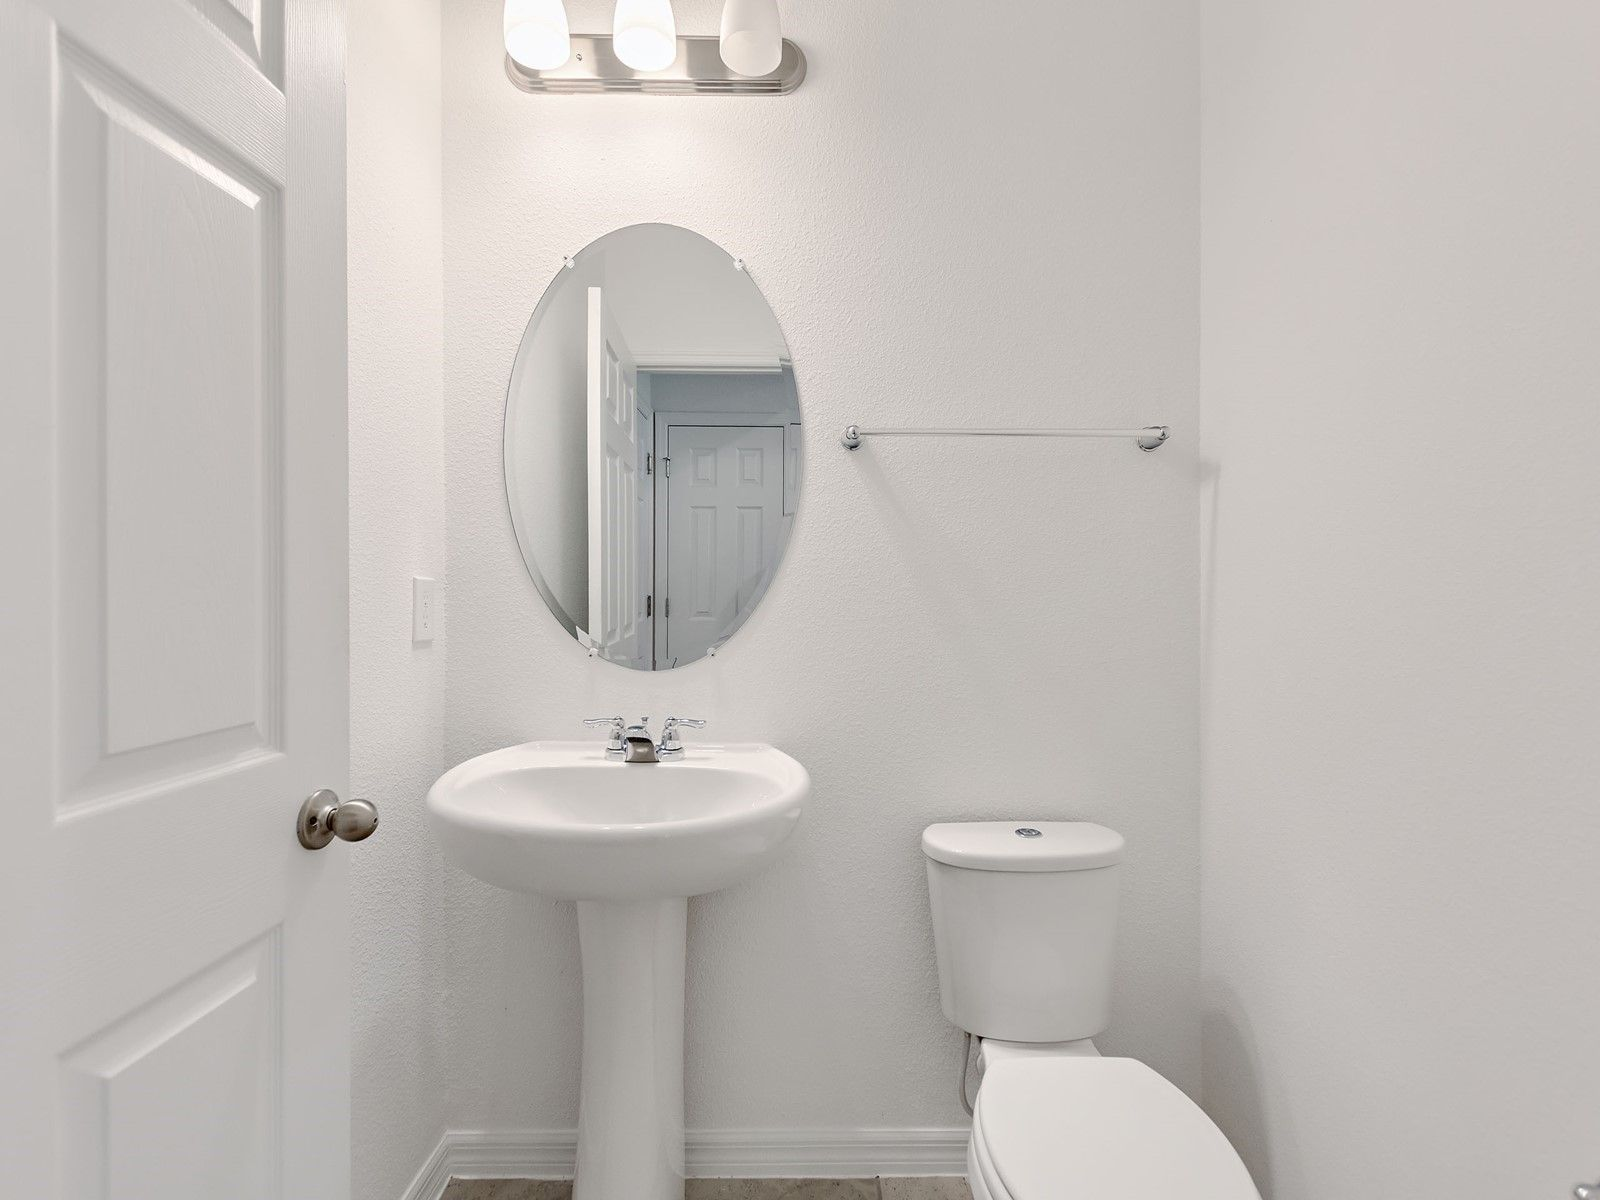 Bathroom featured in the Tennyson By Meritage Homes in Daytona Beach, FL